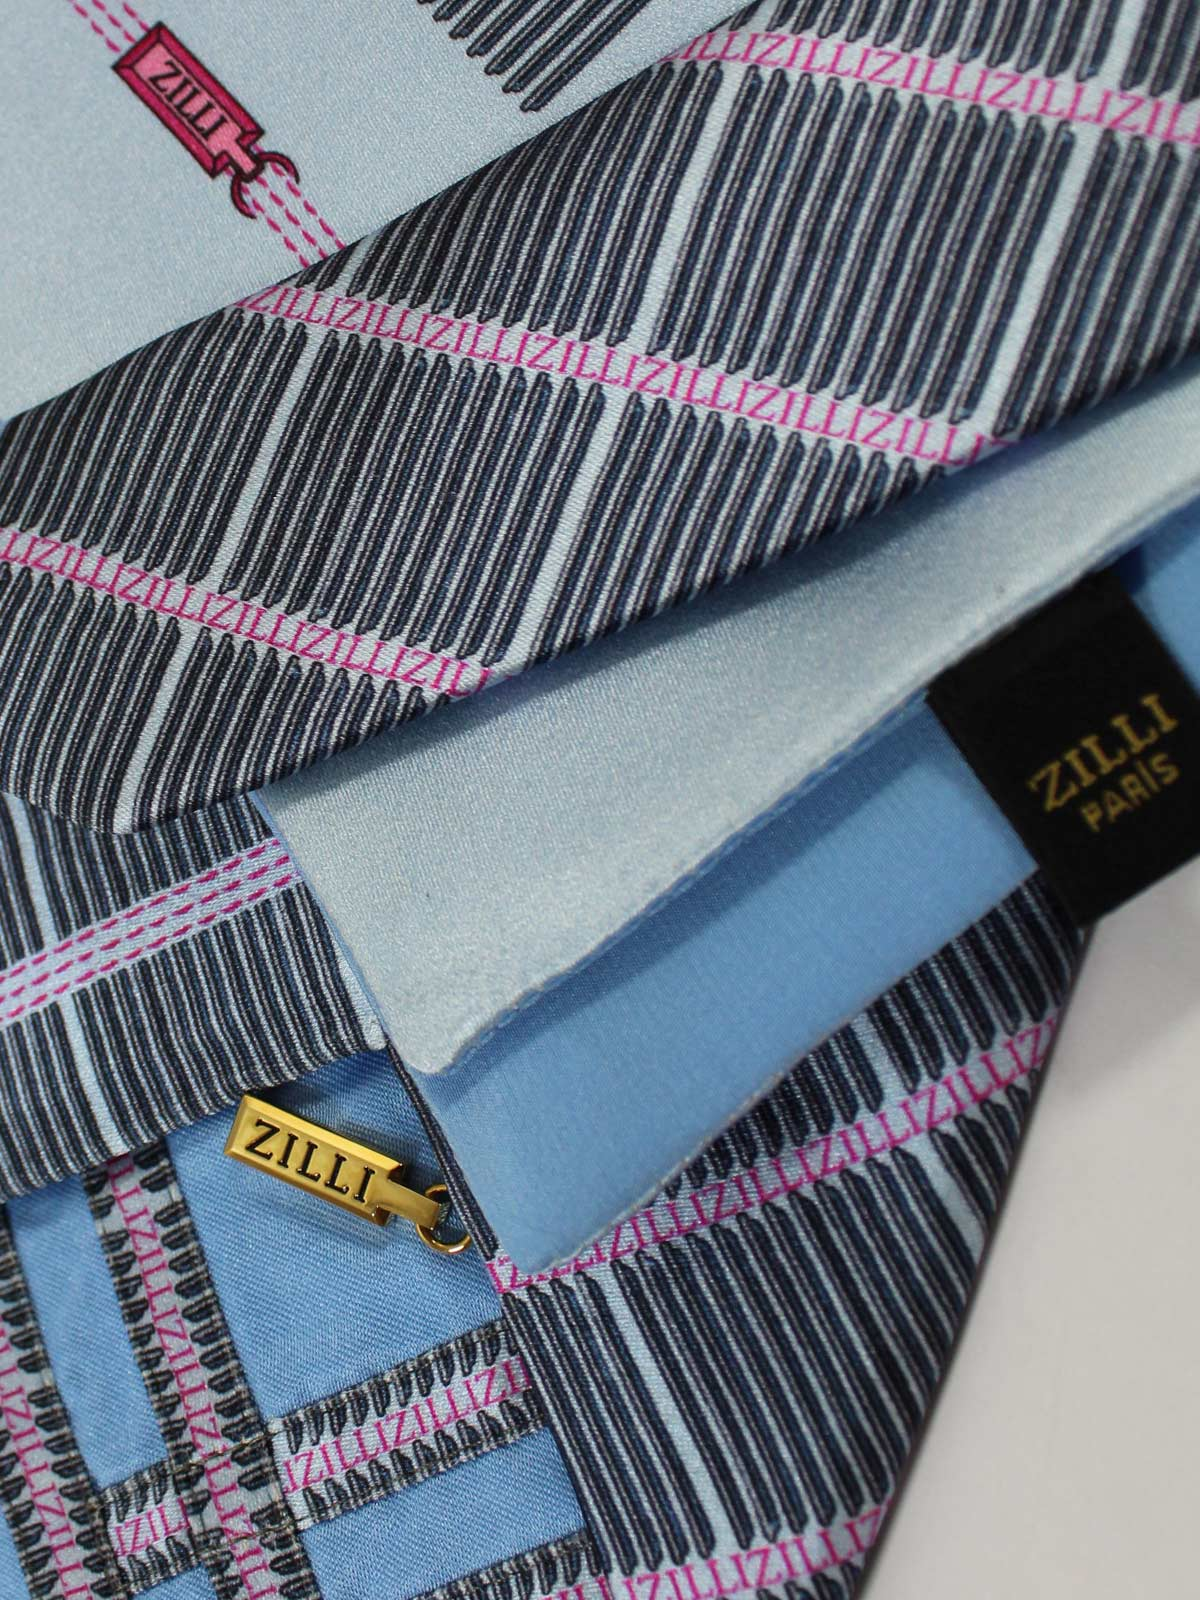 Zilli Extra Long Tie Pocket Square Set Sky Blue Black Pink